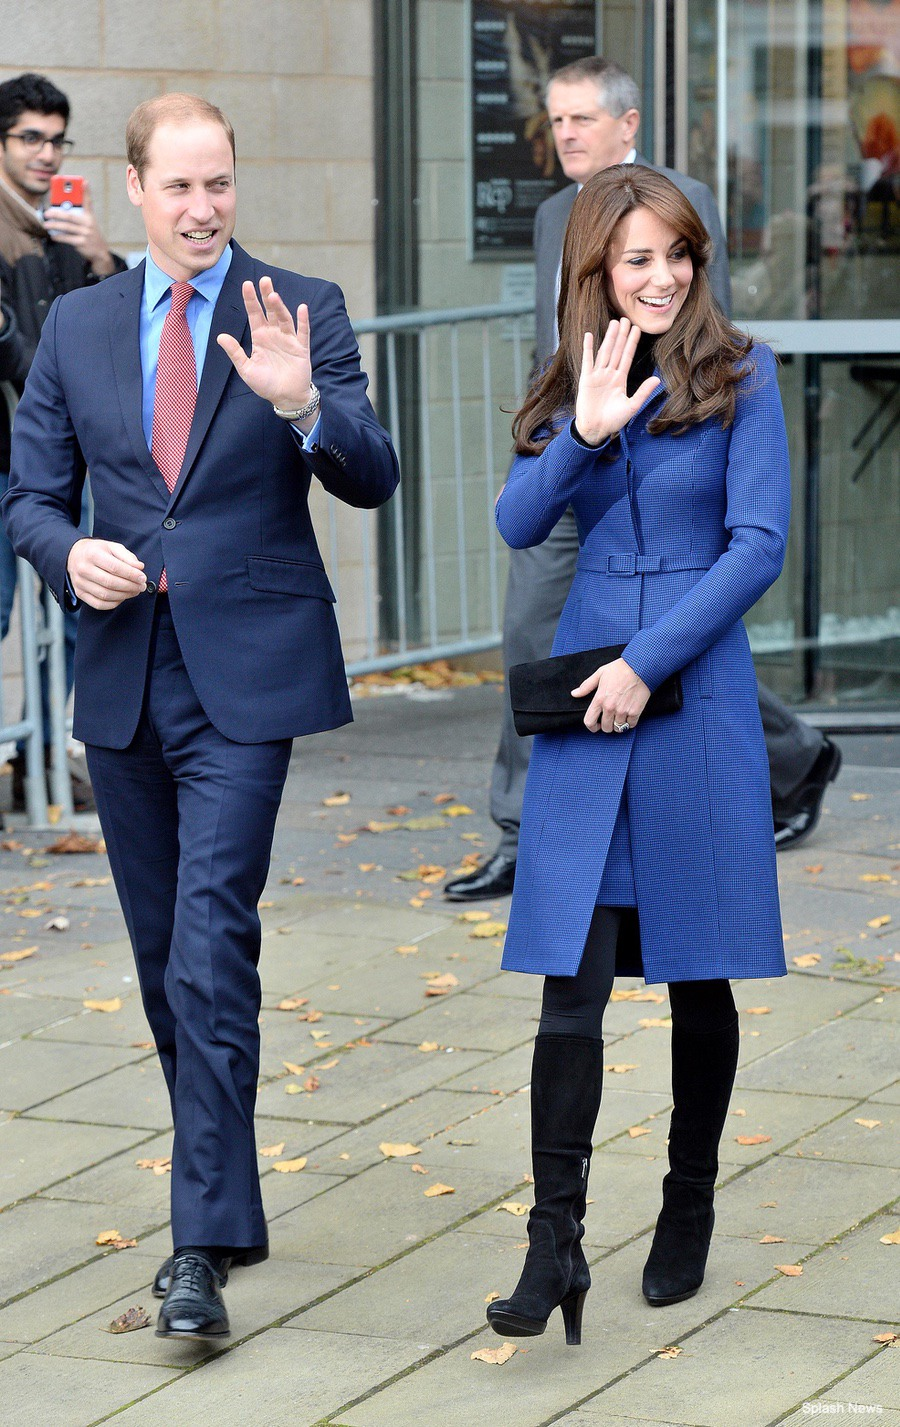 Kate Middleton wearing the Aquatalia Rhumba Boots during a visit to Dundee, Scotland